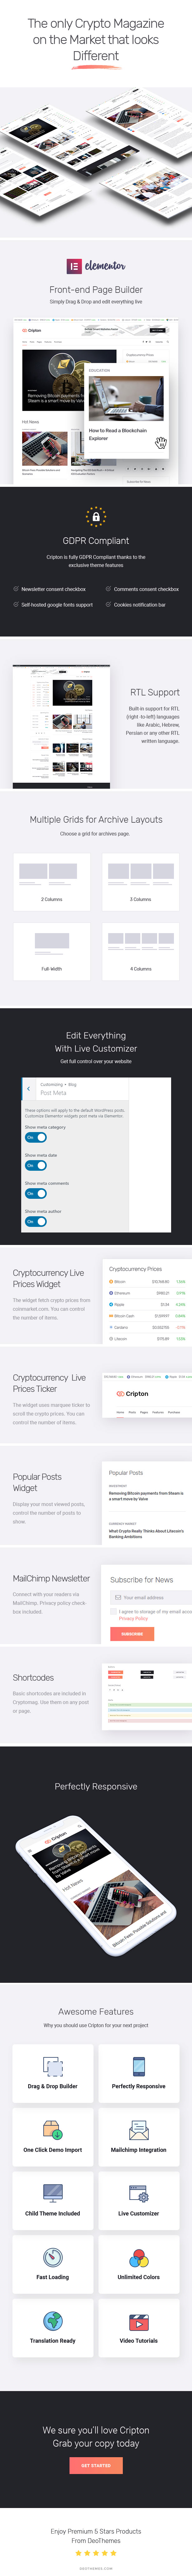 Cripton | Cryptocurrency Magazine WordPress Theme - 2